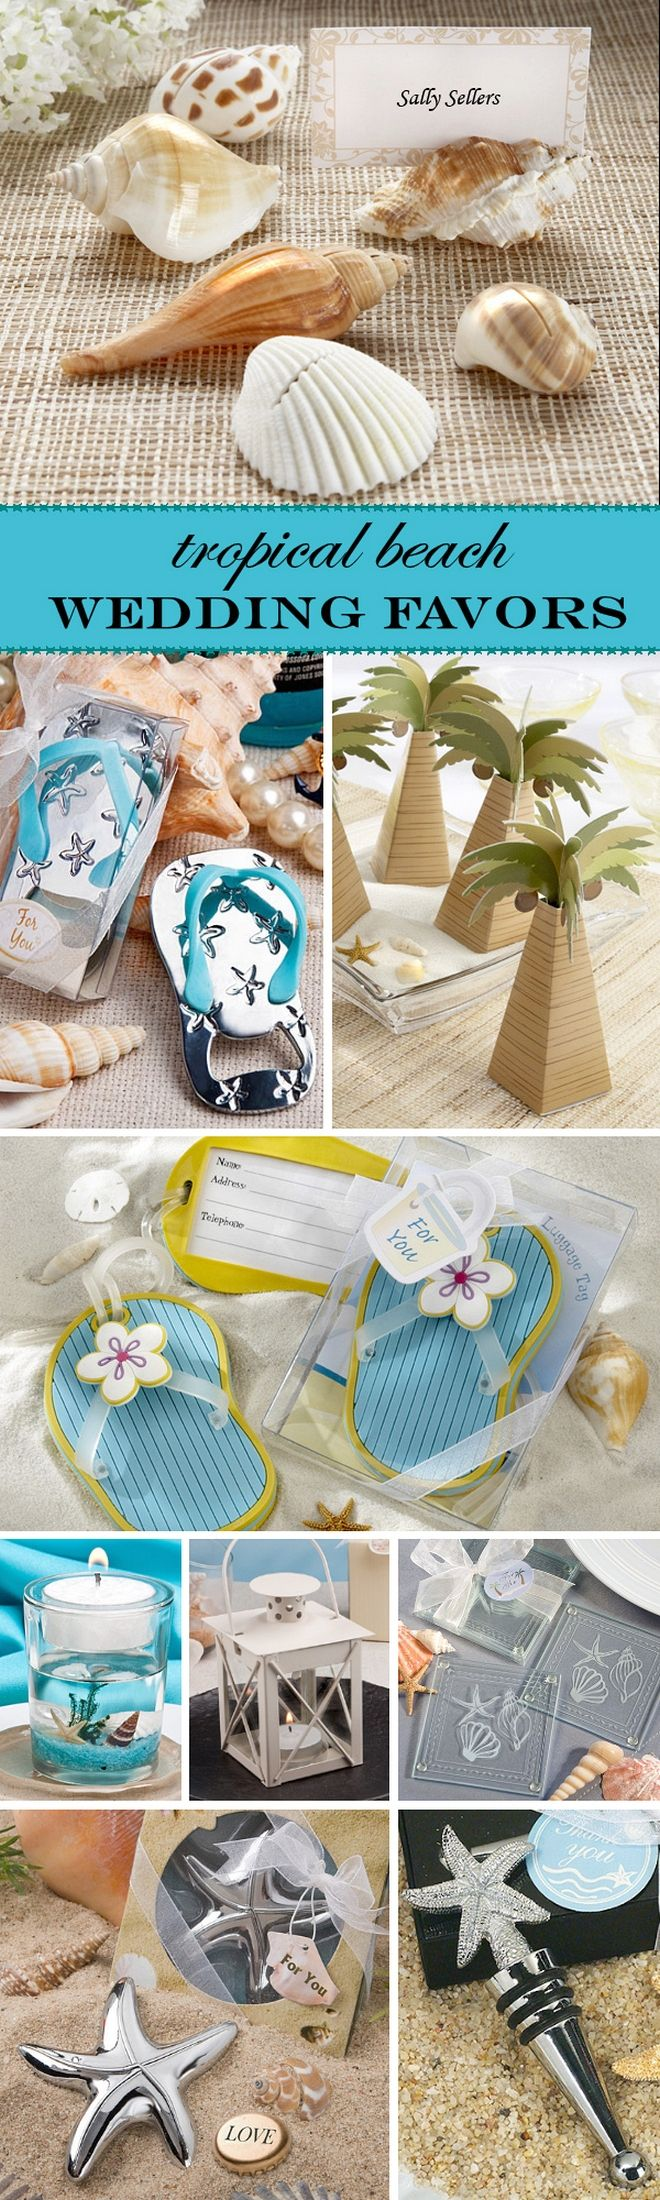 ideas for beach wedding party favors%0A      Gorgeous Beach Themed Wedding Ideas and Accessories